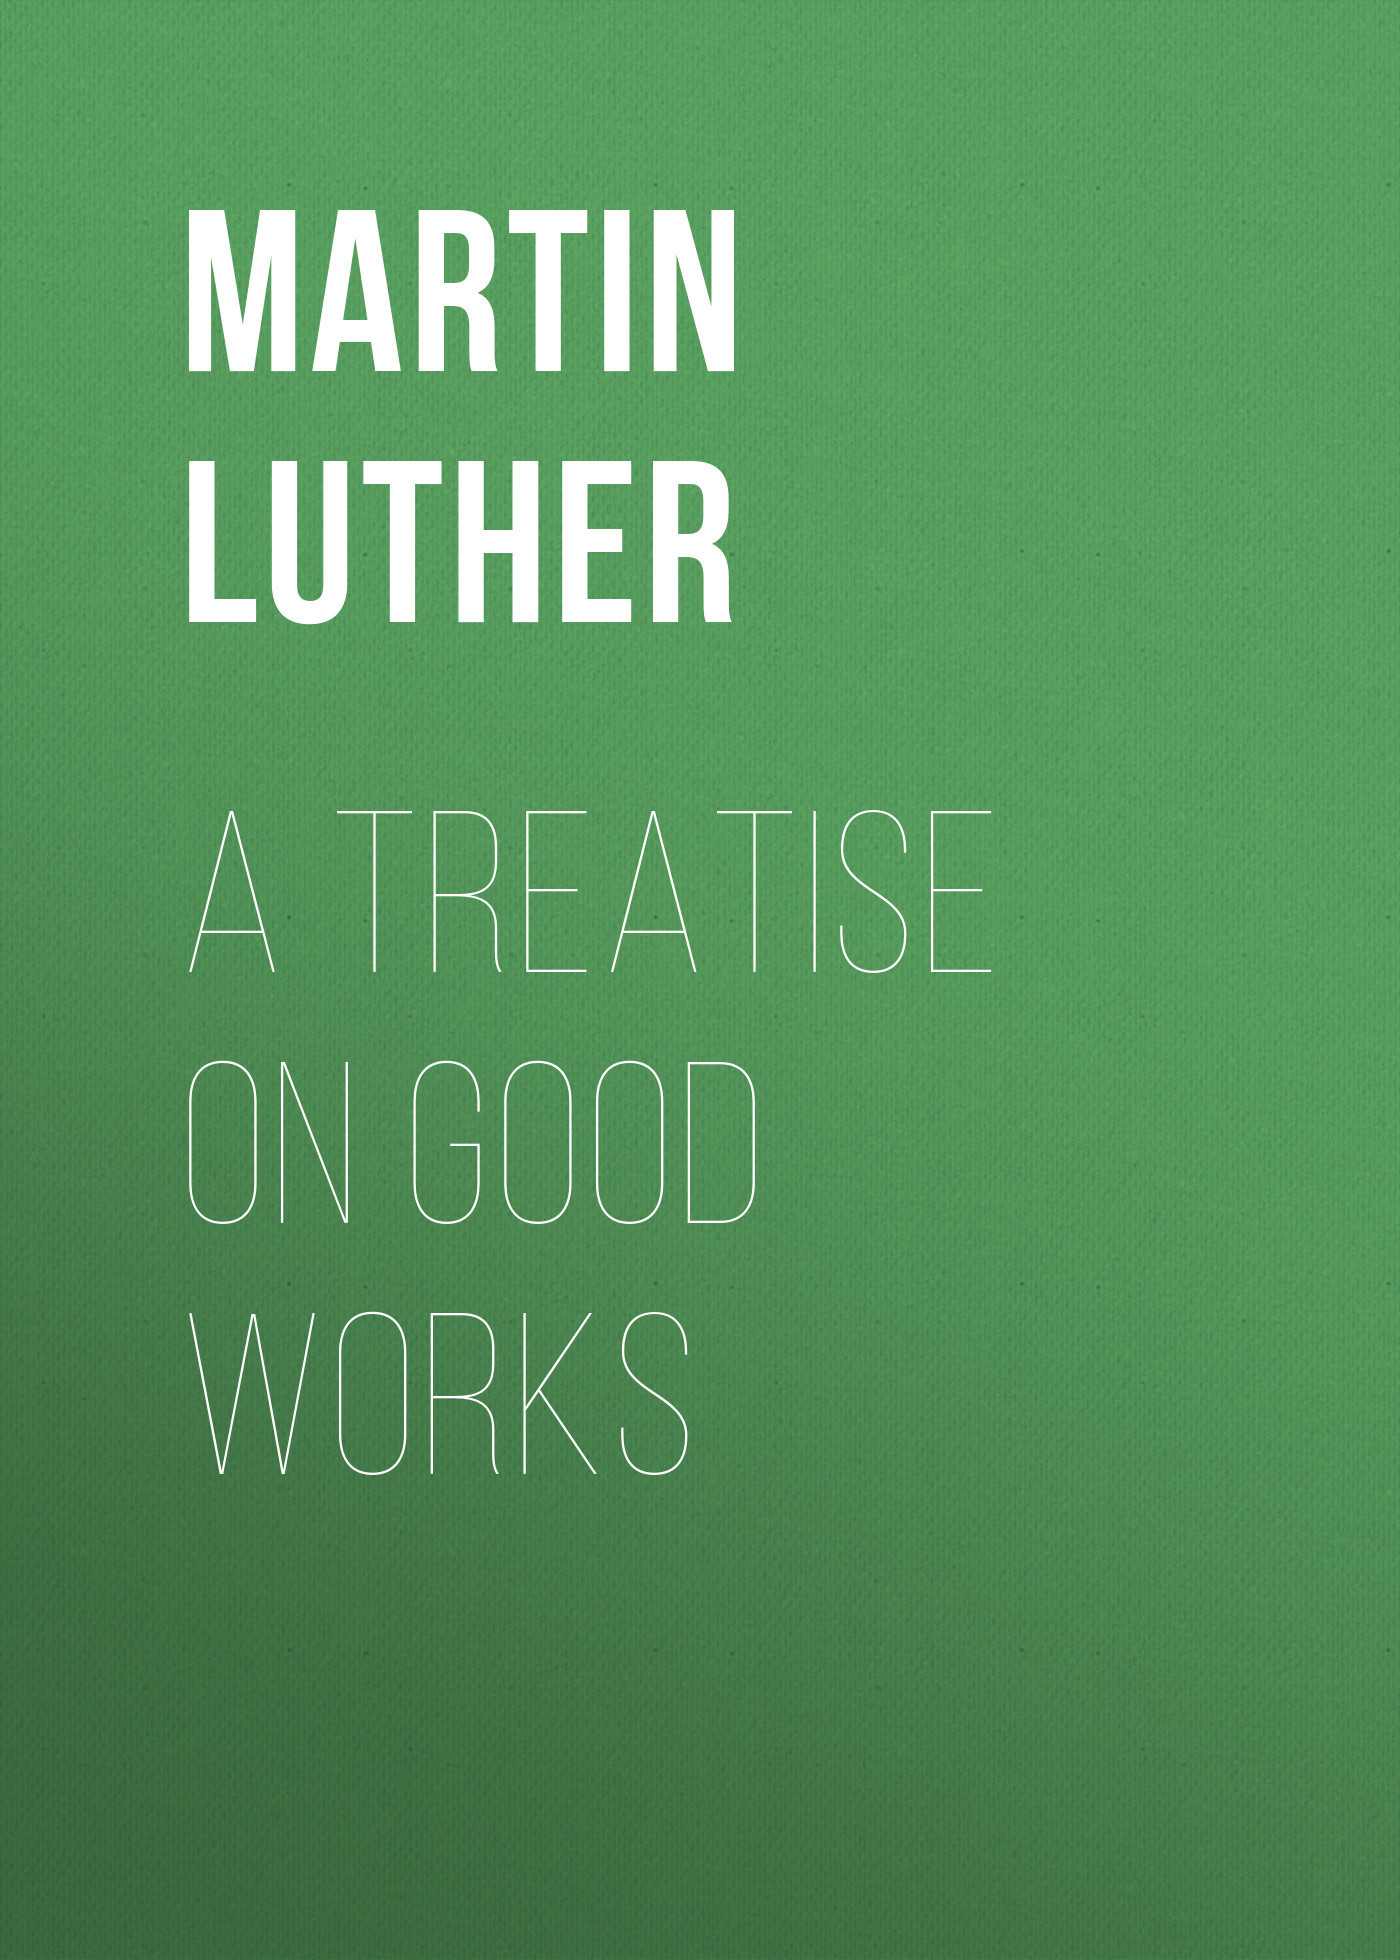 Martin Luther A Treatise on Good Works цены онлайн